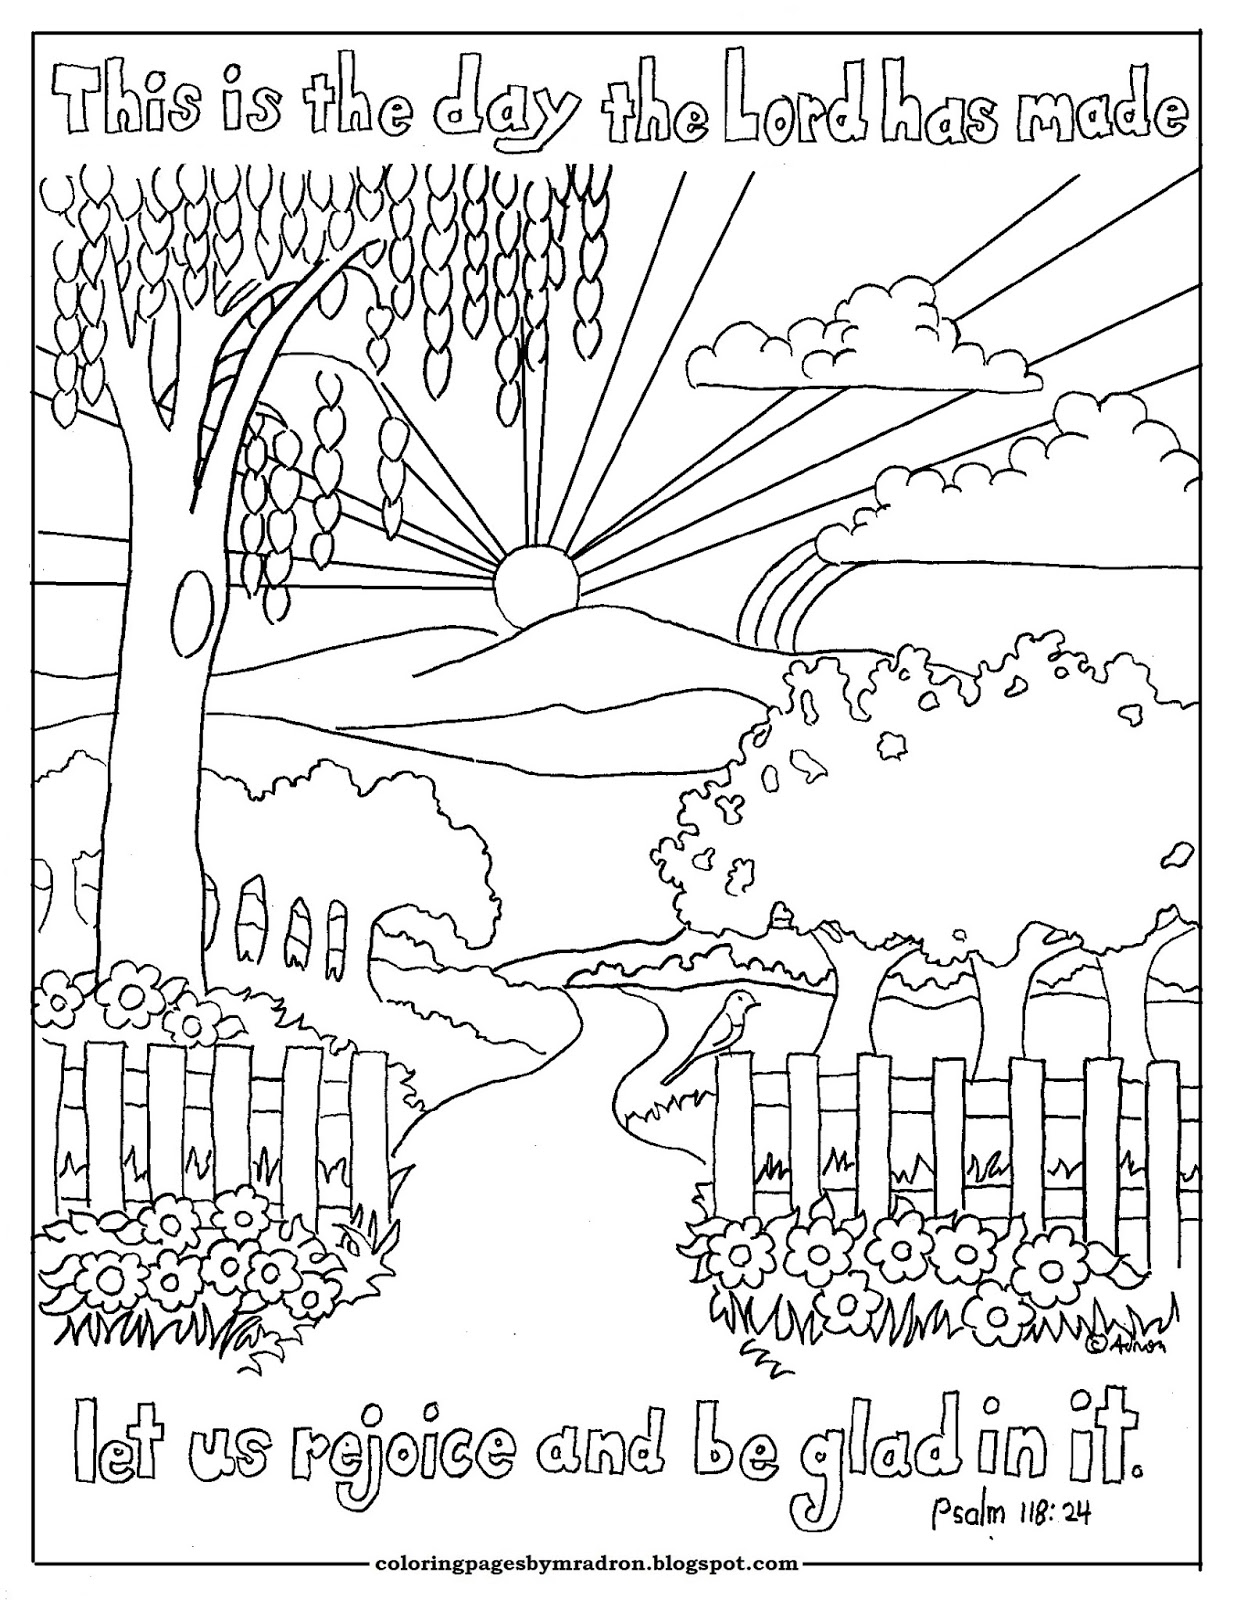 Coloring Pages for Kids by Mr. Adron: This is the Day The